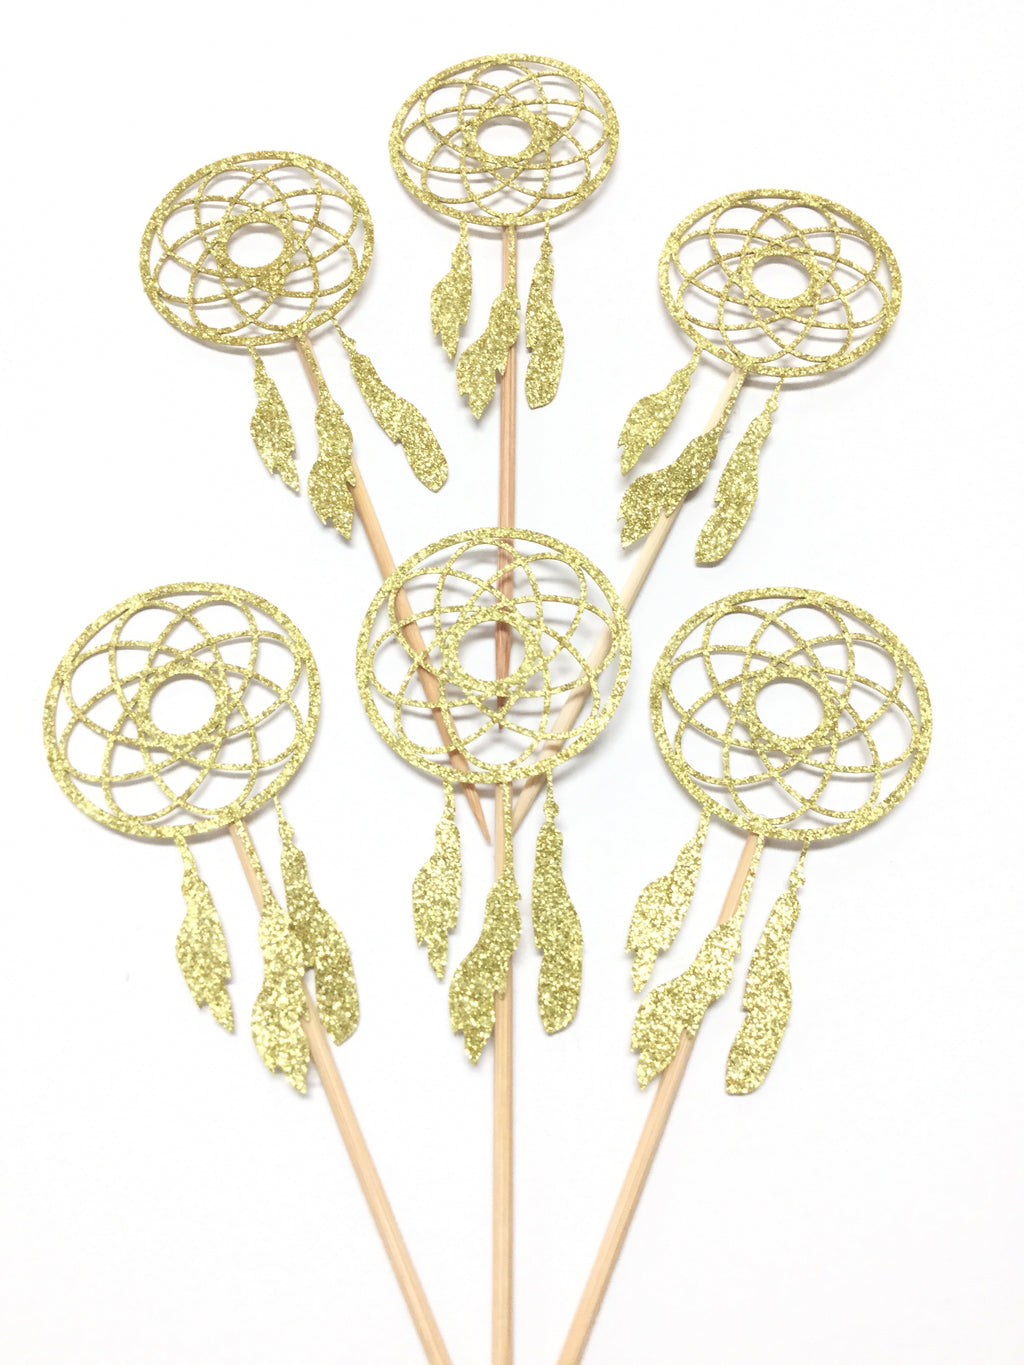 Cake Toppers - Gold dream catchers